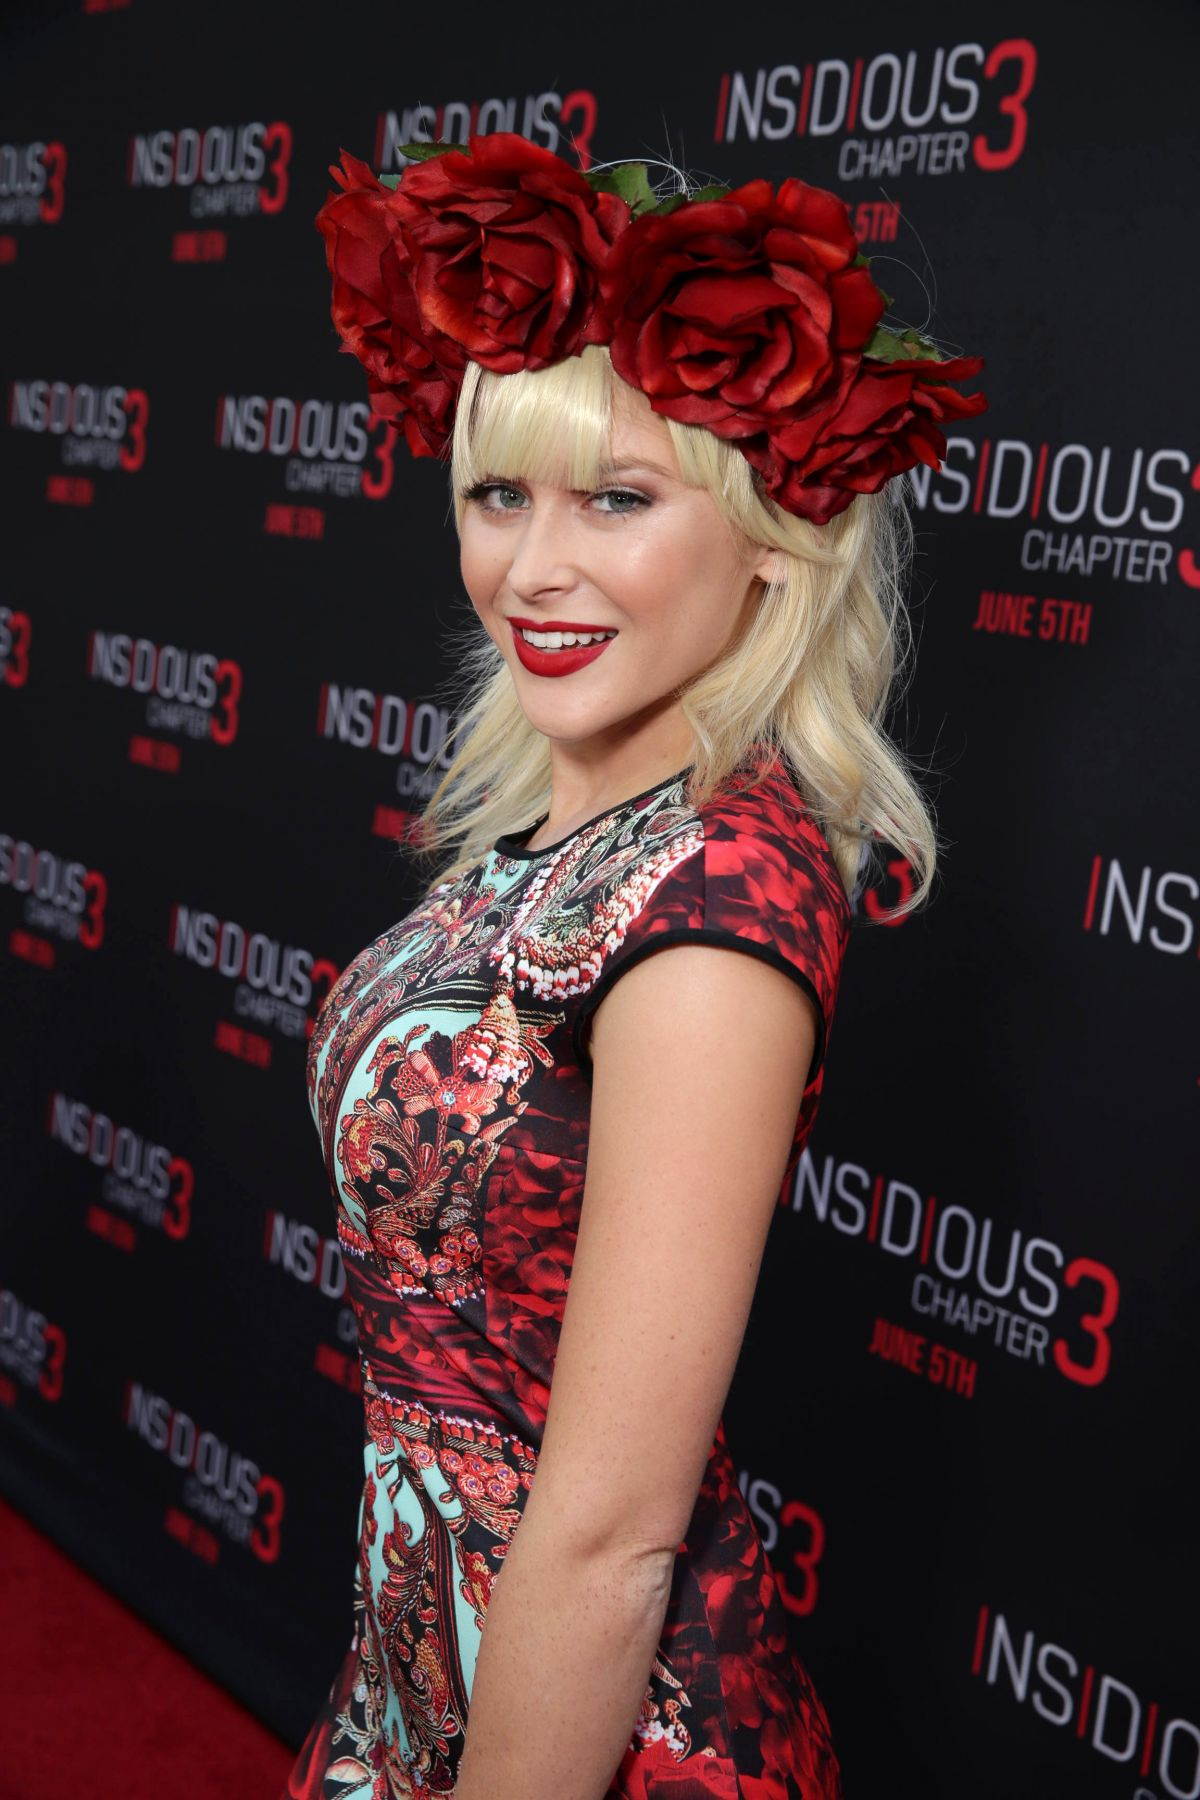 RENEE OLSTEAD at Insidious Chapter 3 Premiere in Hollywood